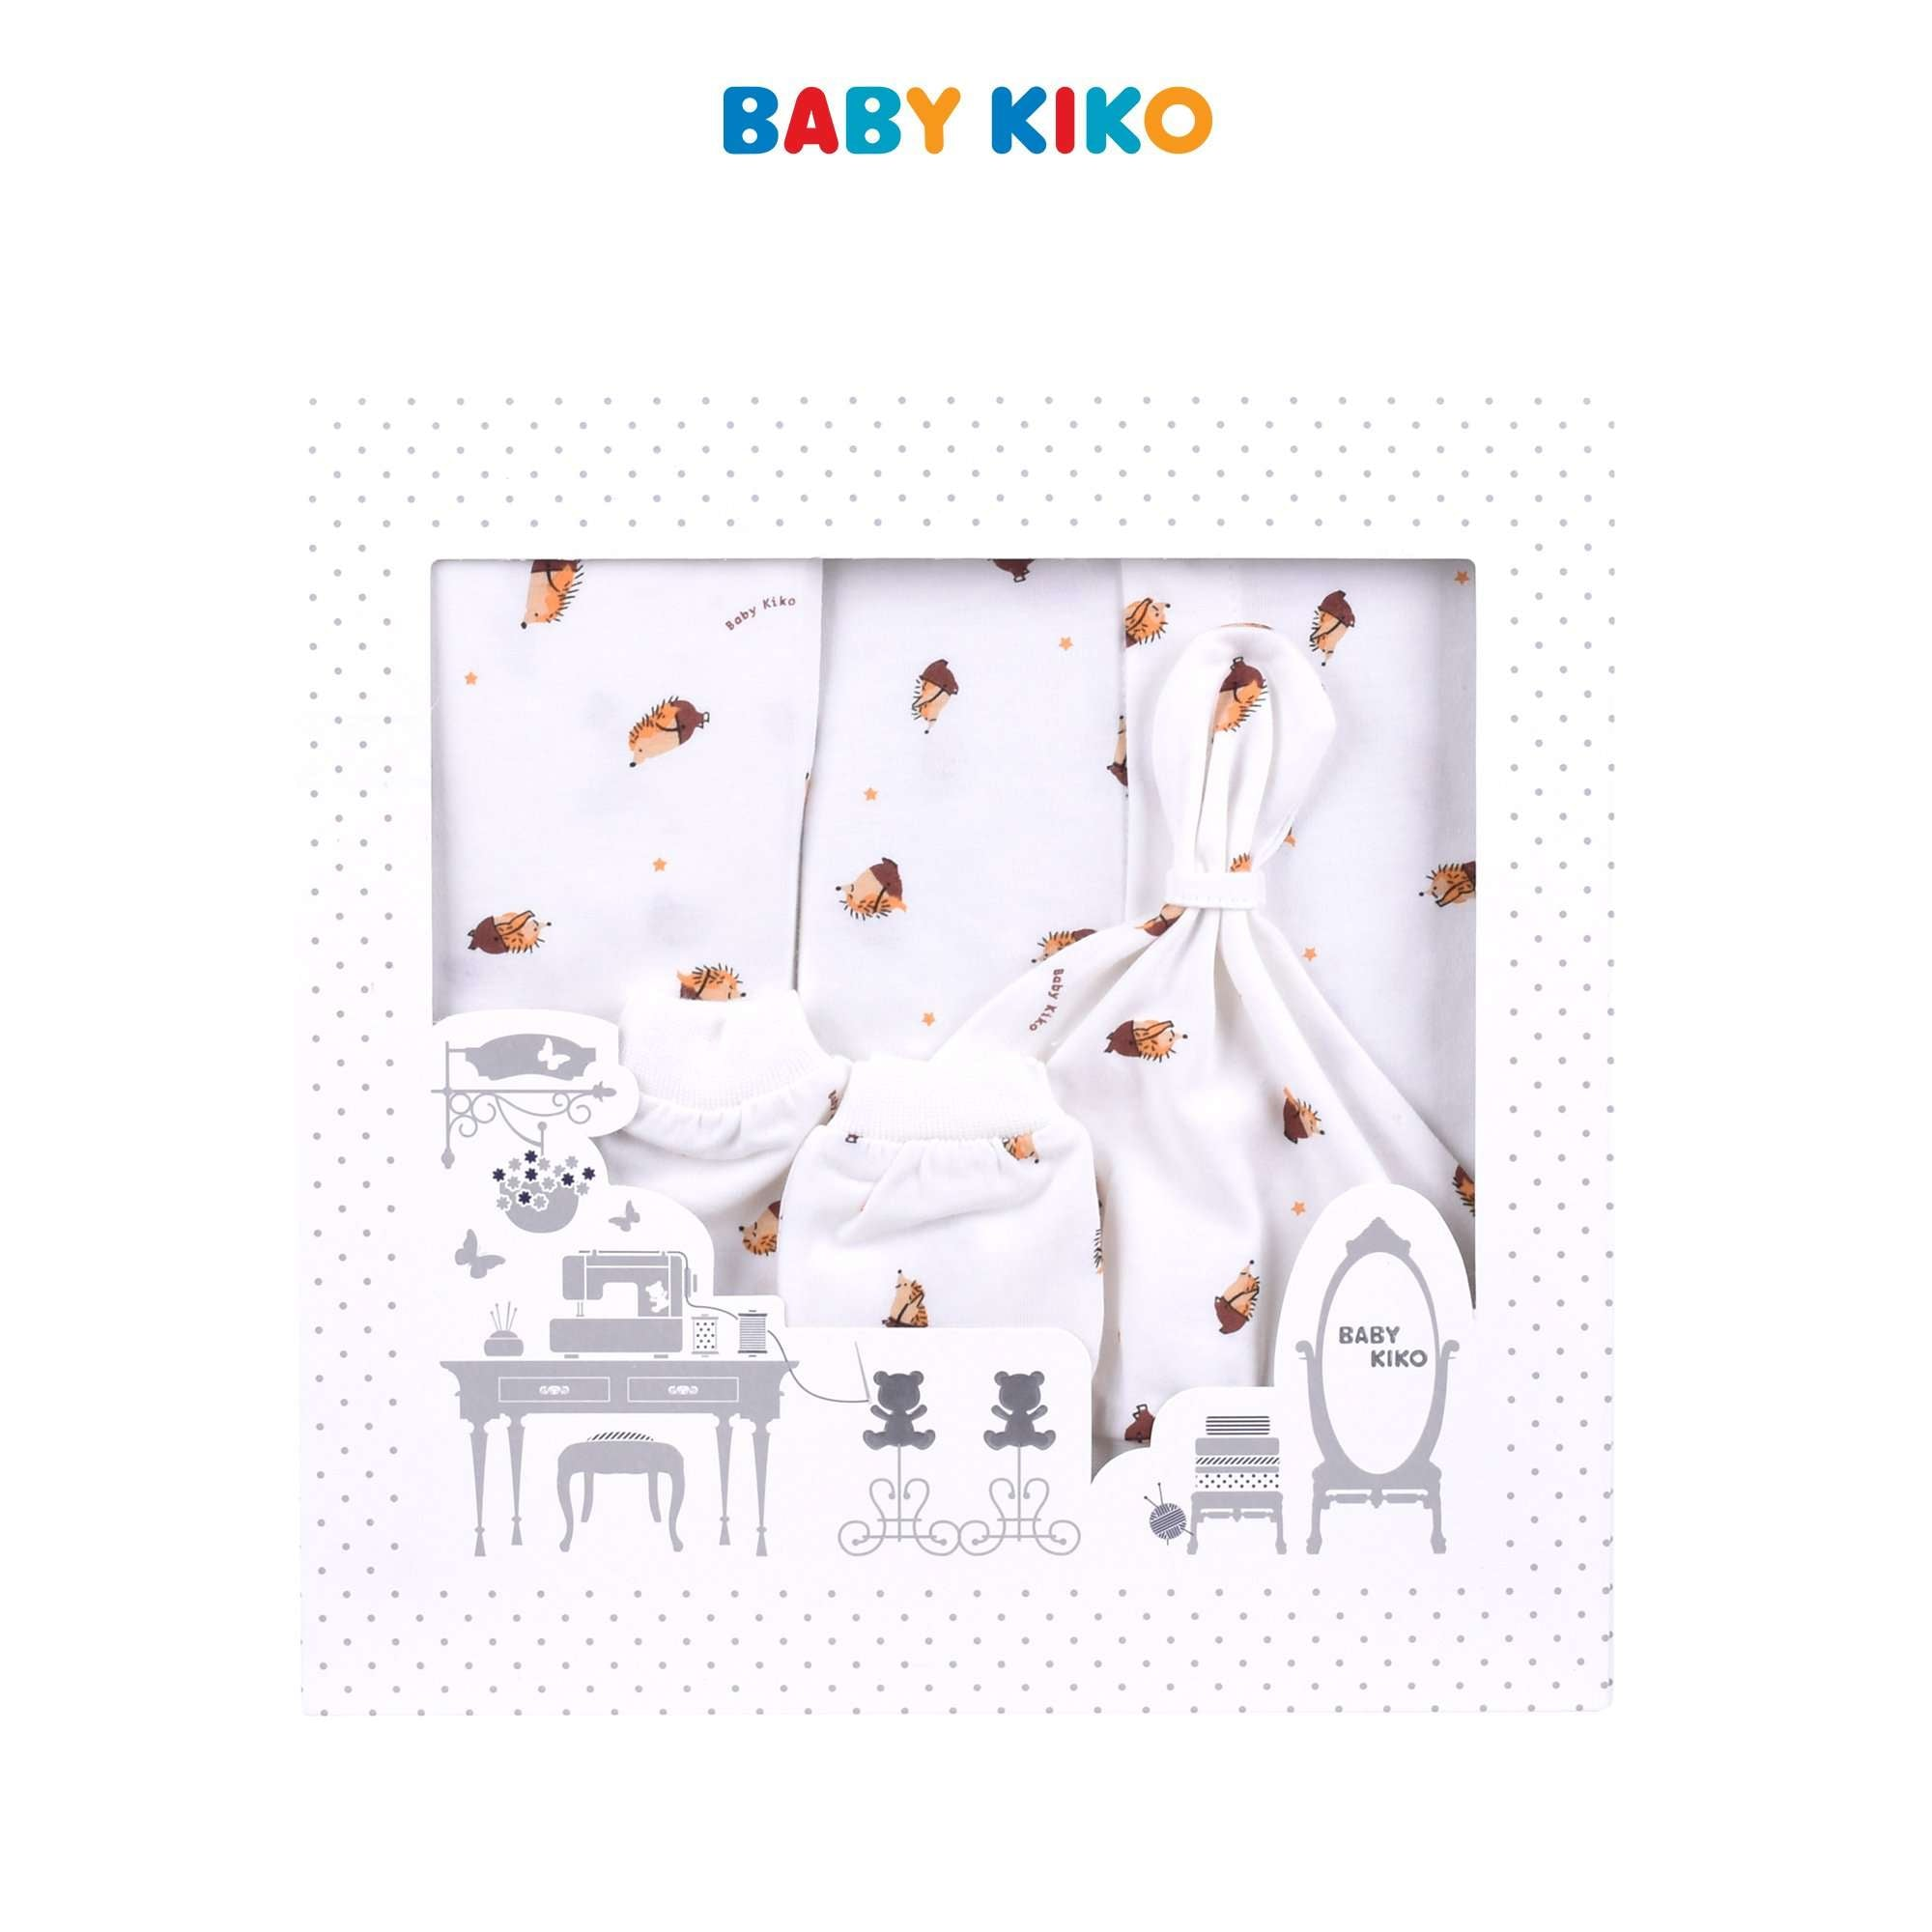 Baby KIKO New Born Baby Boy Gift Set 320145-601 : Buy Baby KIKO online at CMG.MY